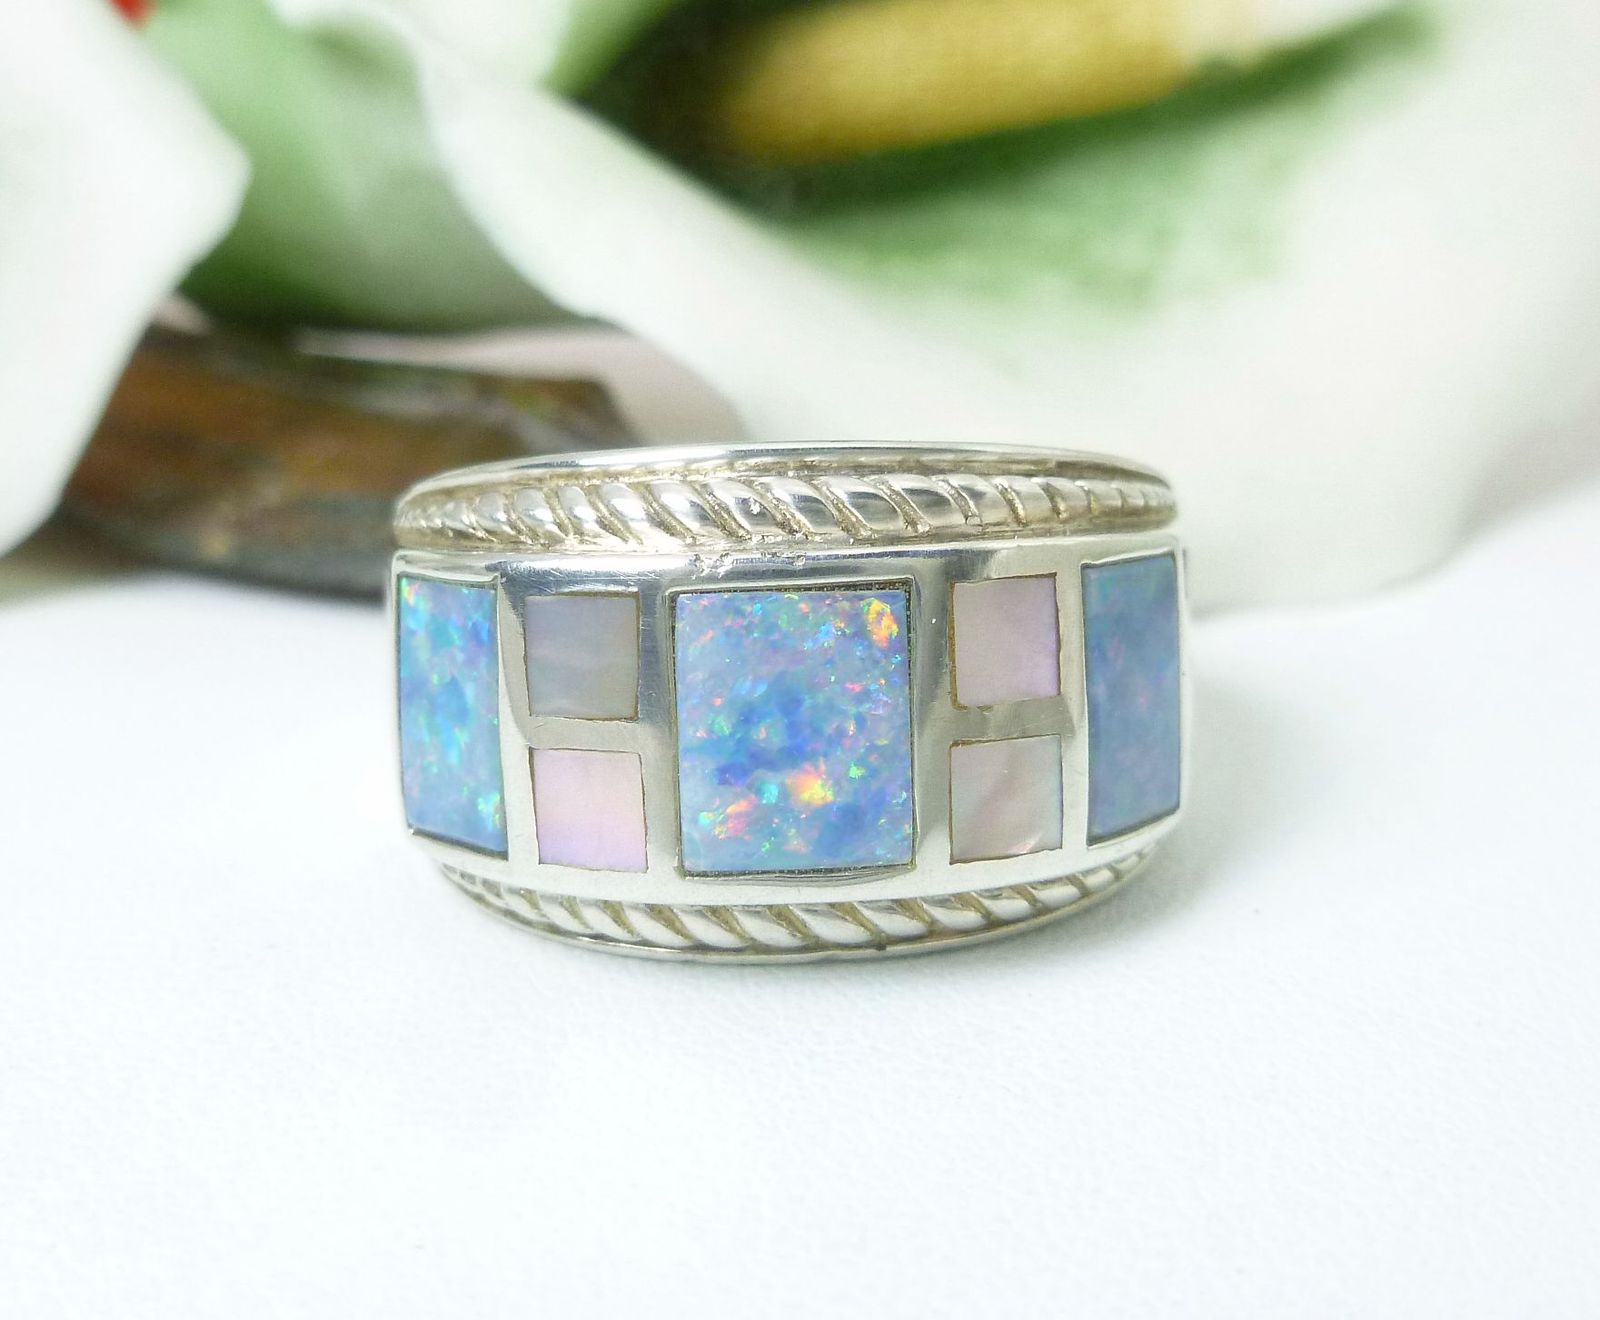 Australian Opal Doublet & Mother-of-Pearl Sterling Ring Size 7